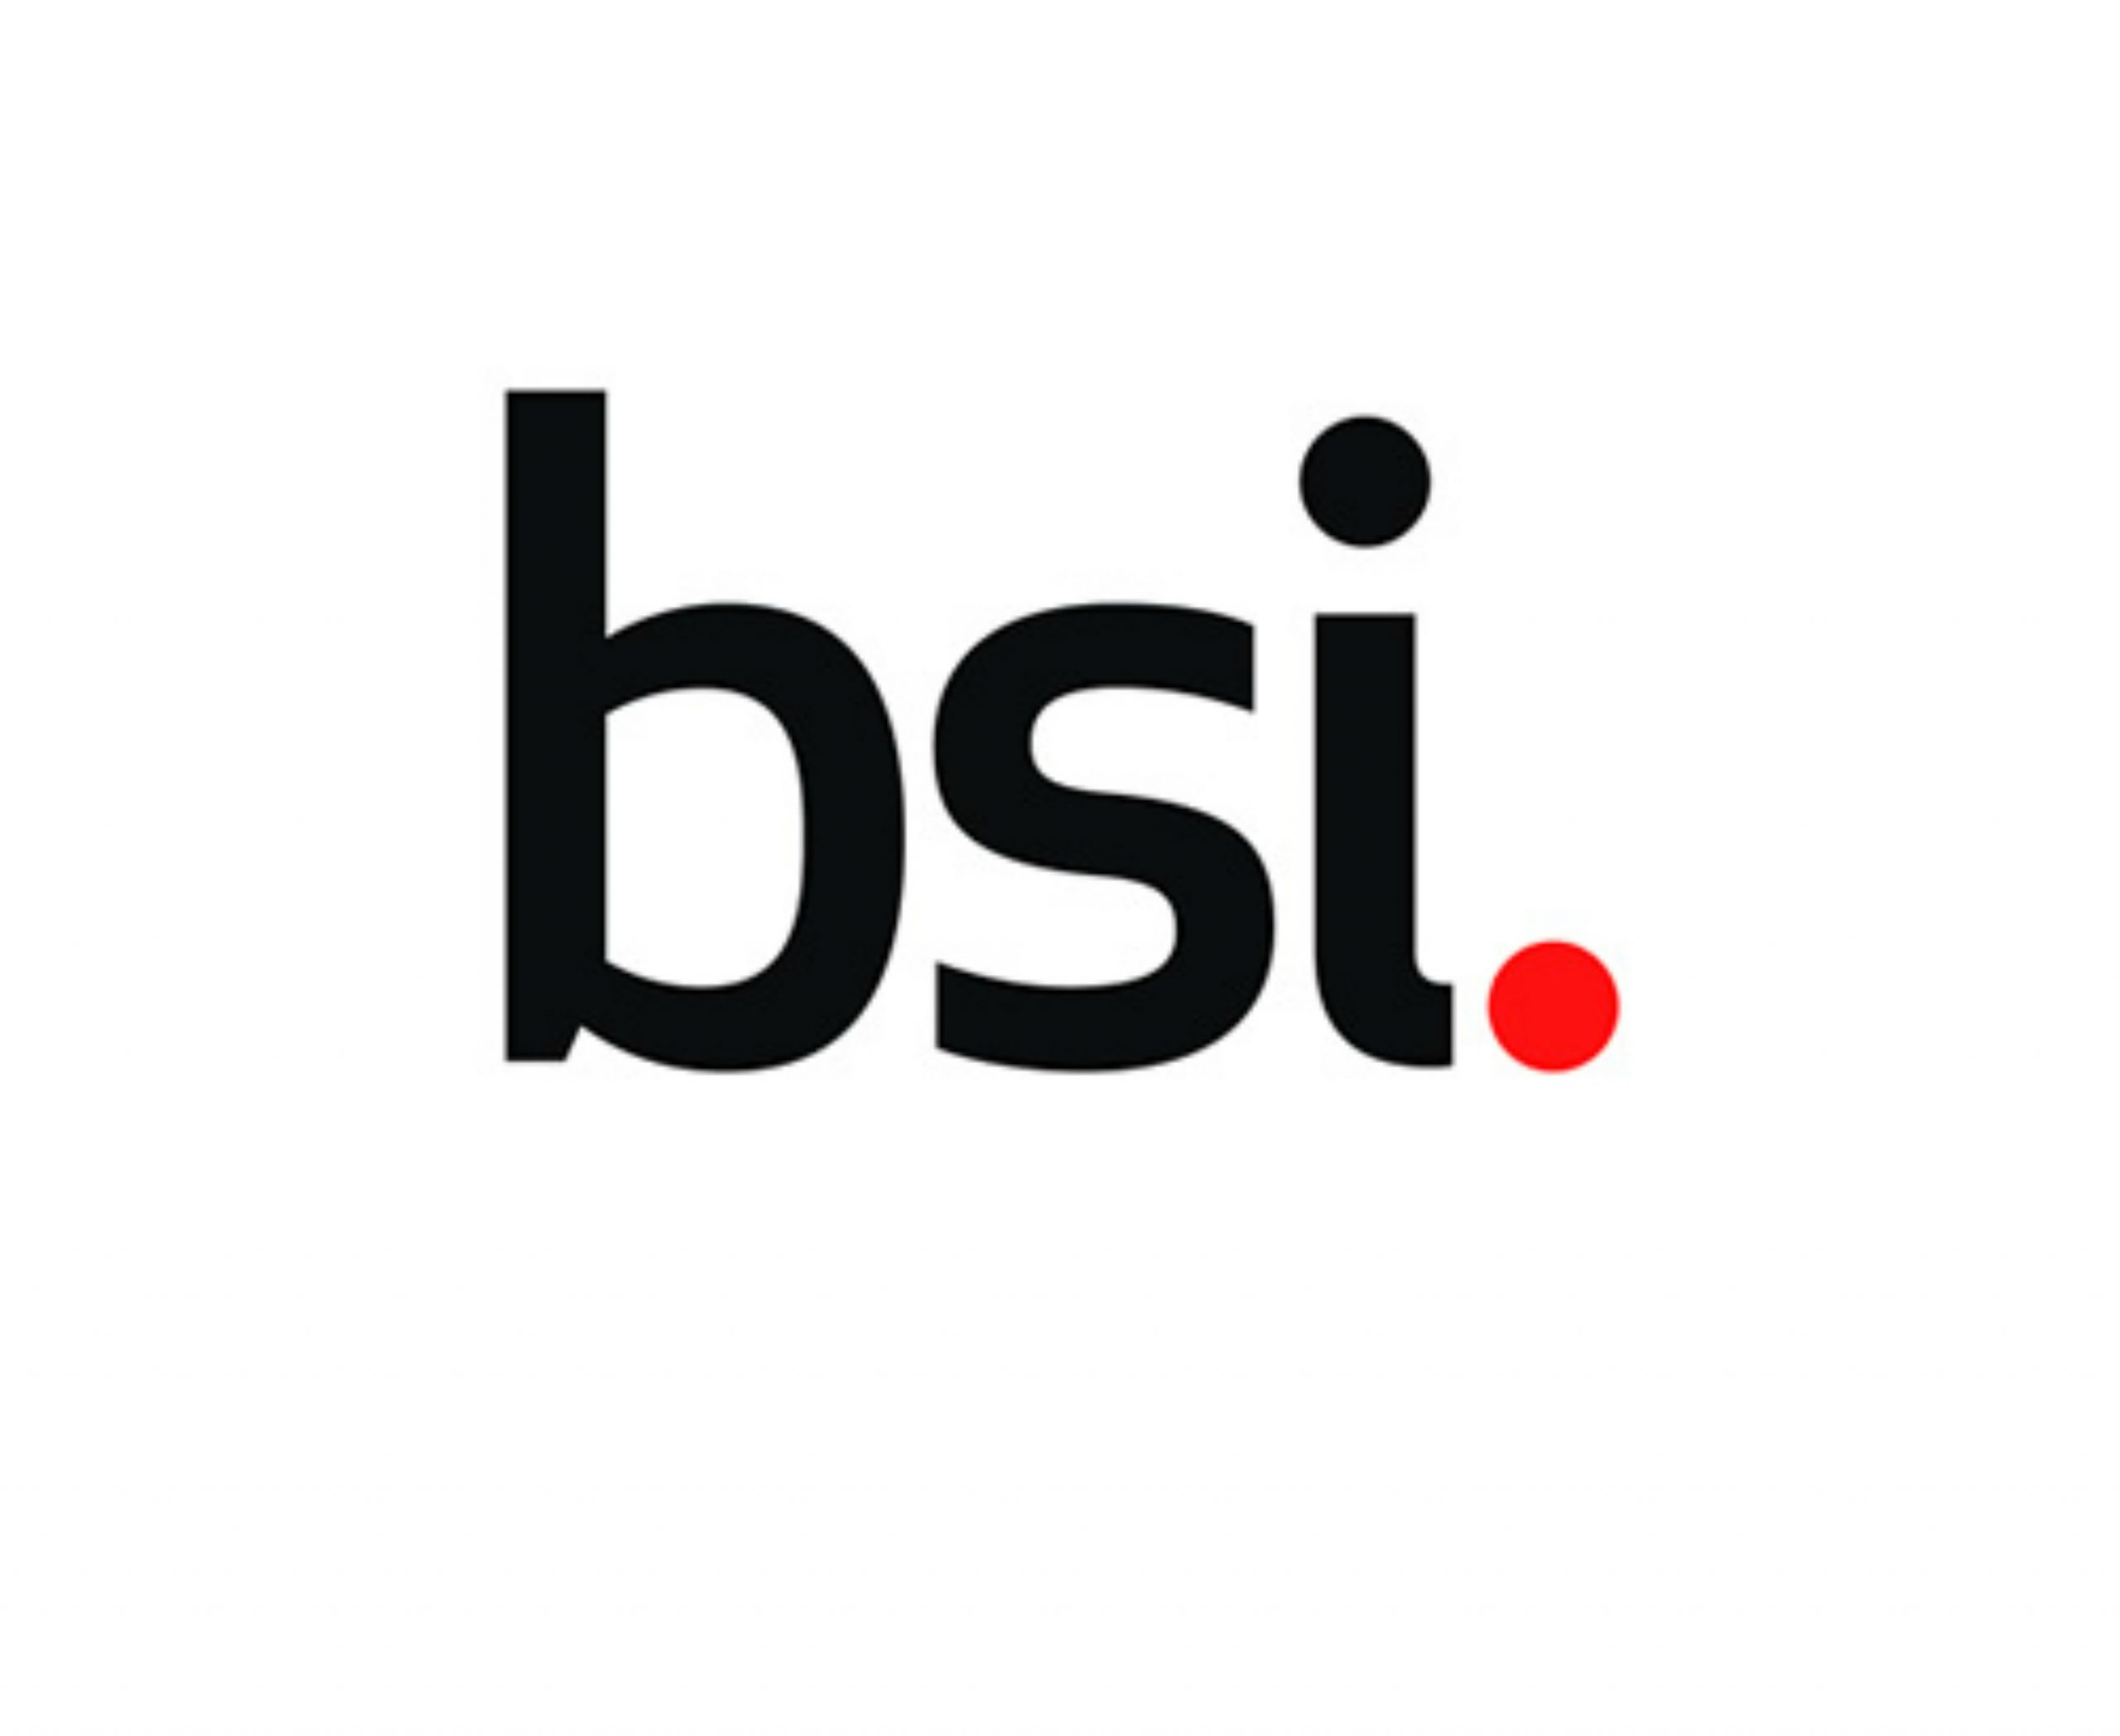 BSI achieves designation to the Medical Device Regulation for Netherlands notified body